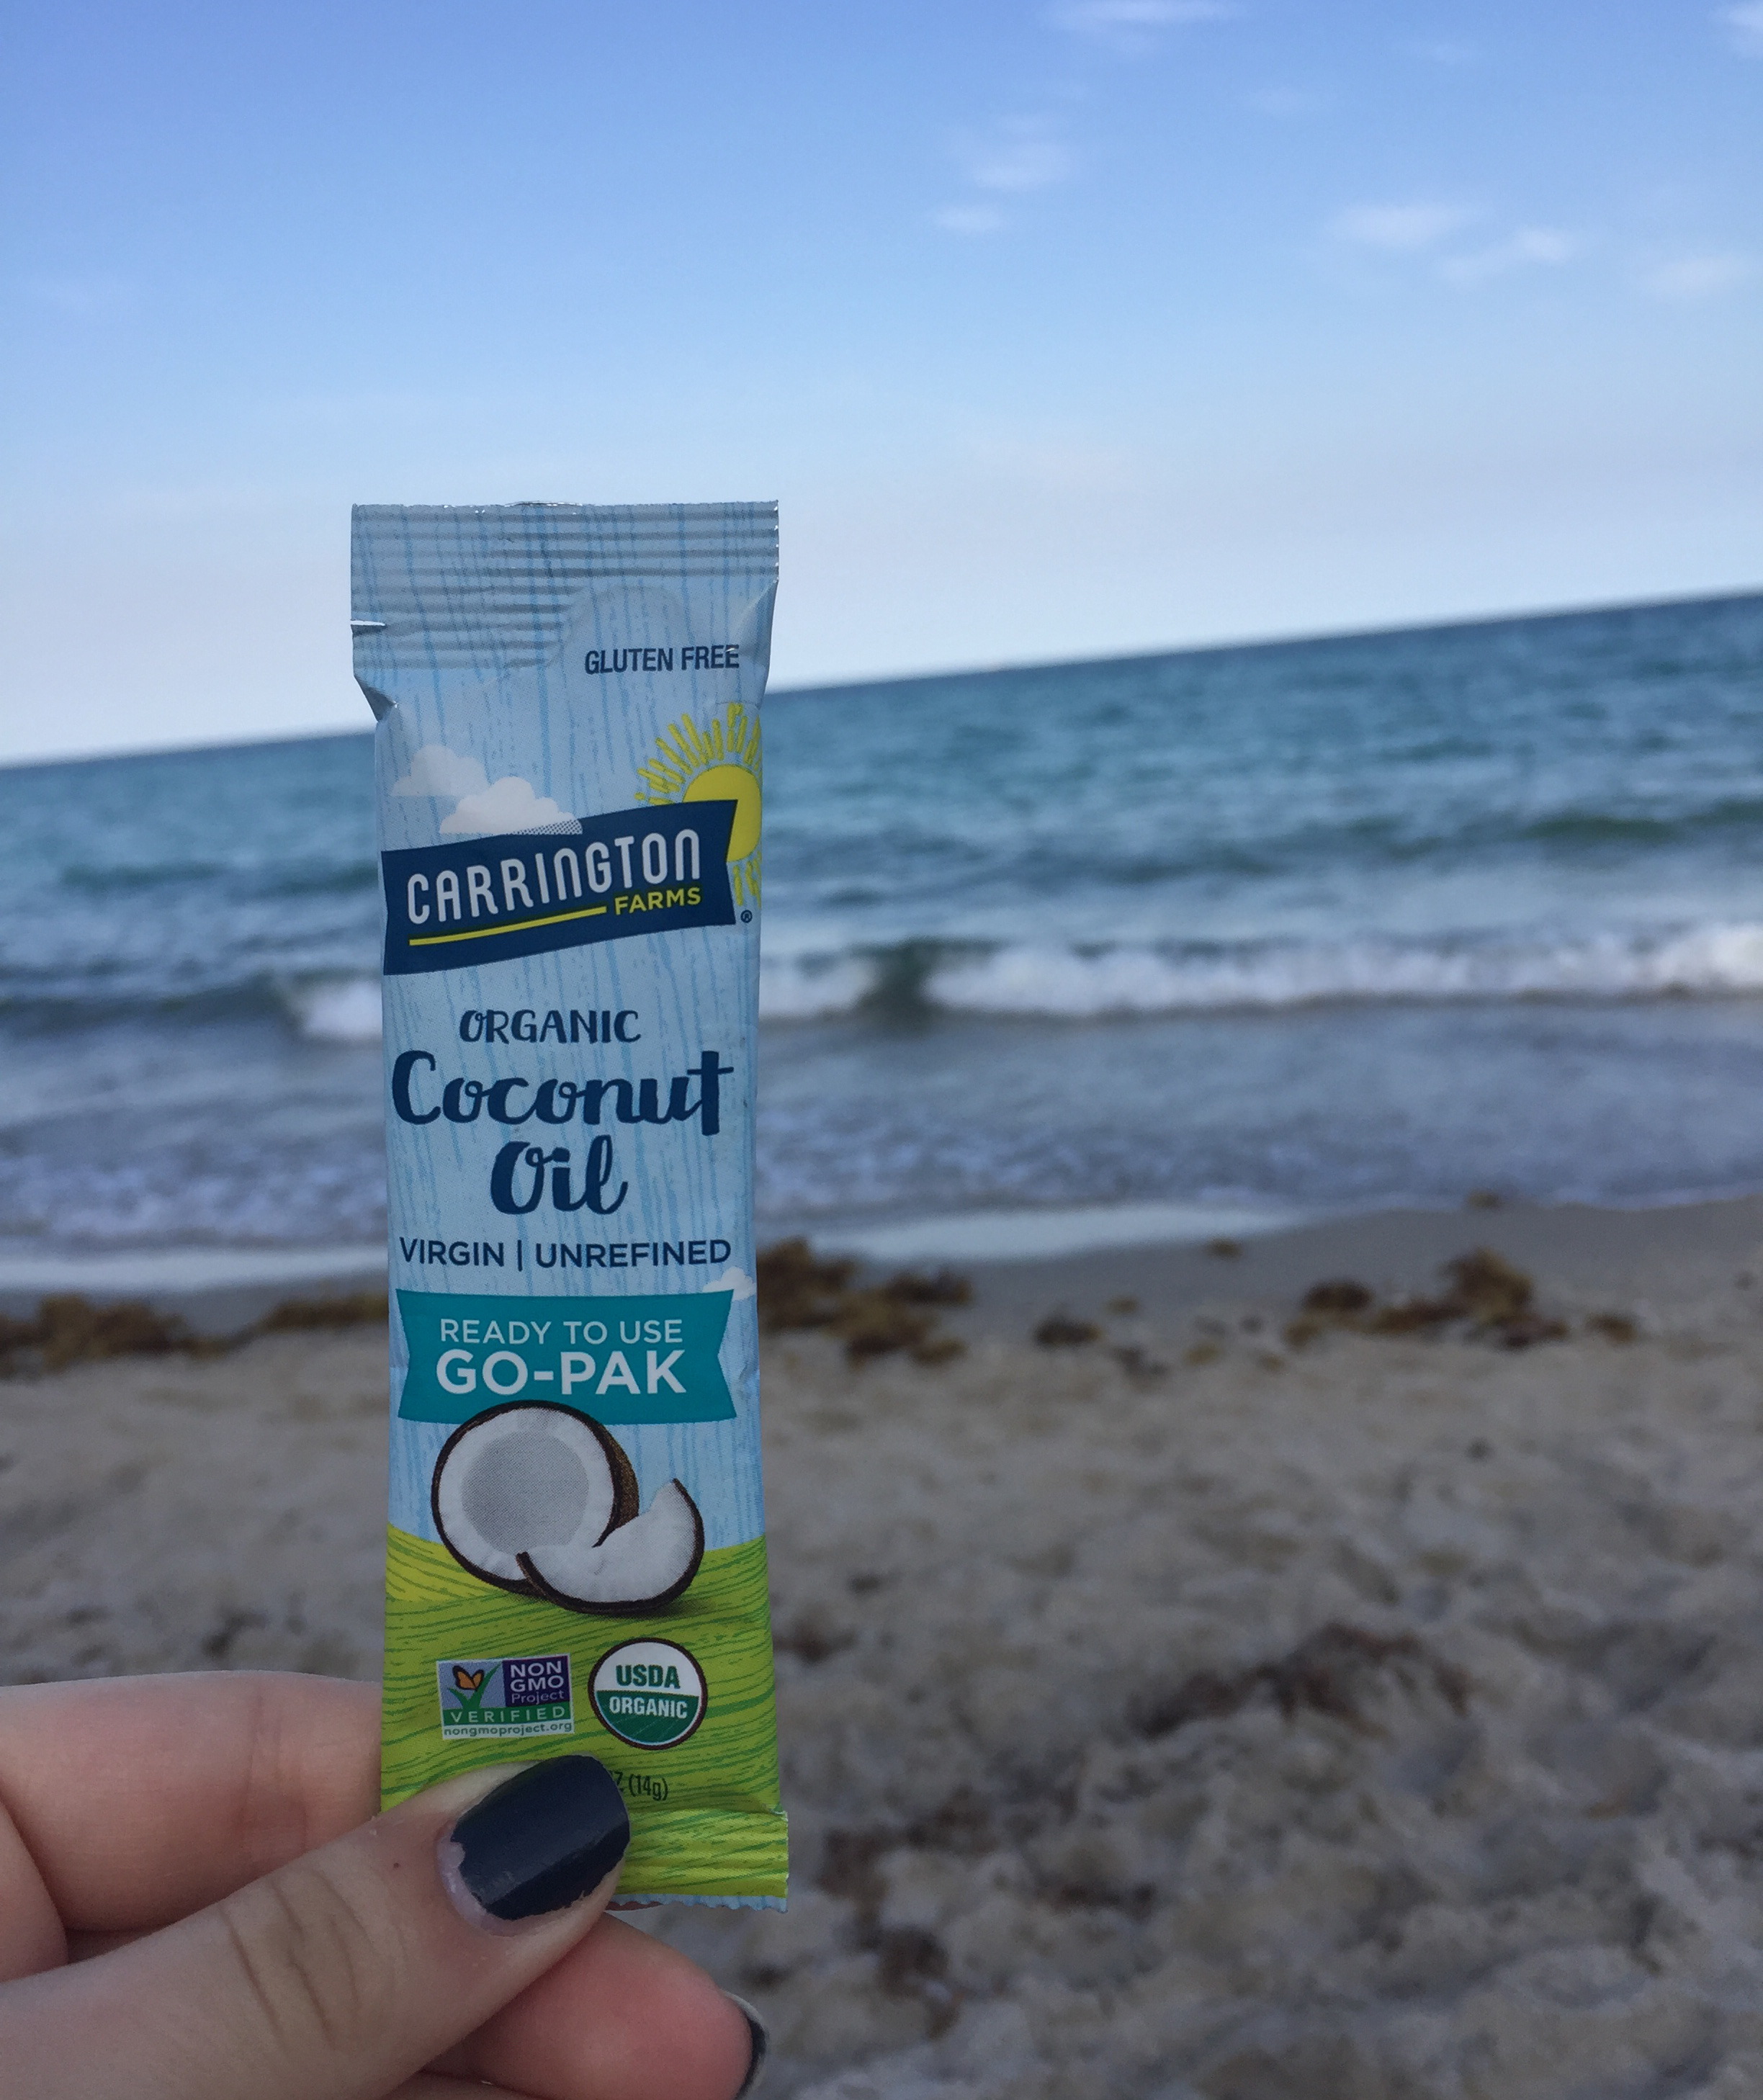 It is easy to relax on the beach in Hollywood, Florida when you have Coconut Oil Paks handy!